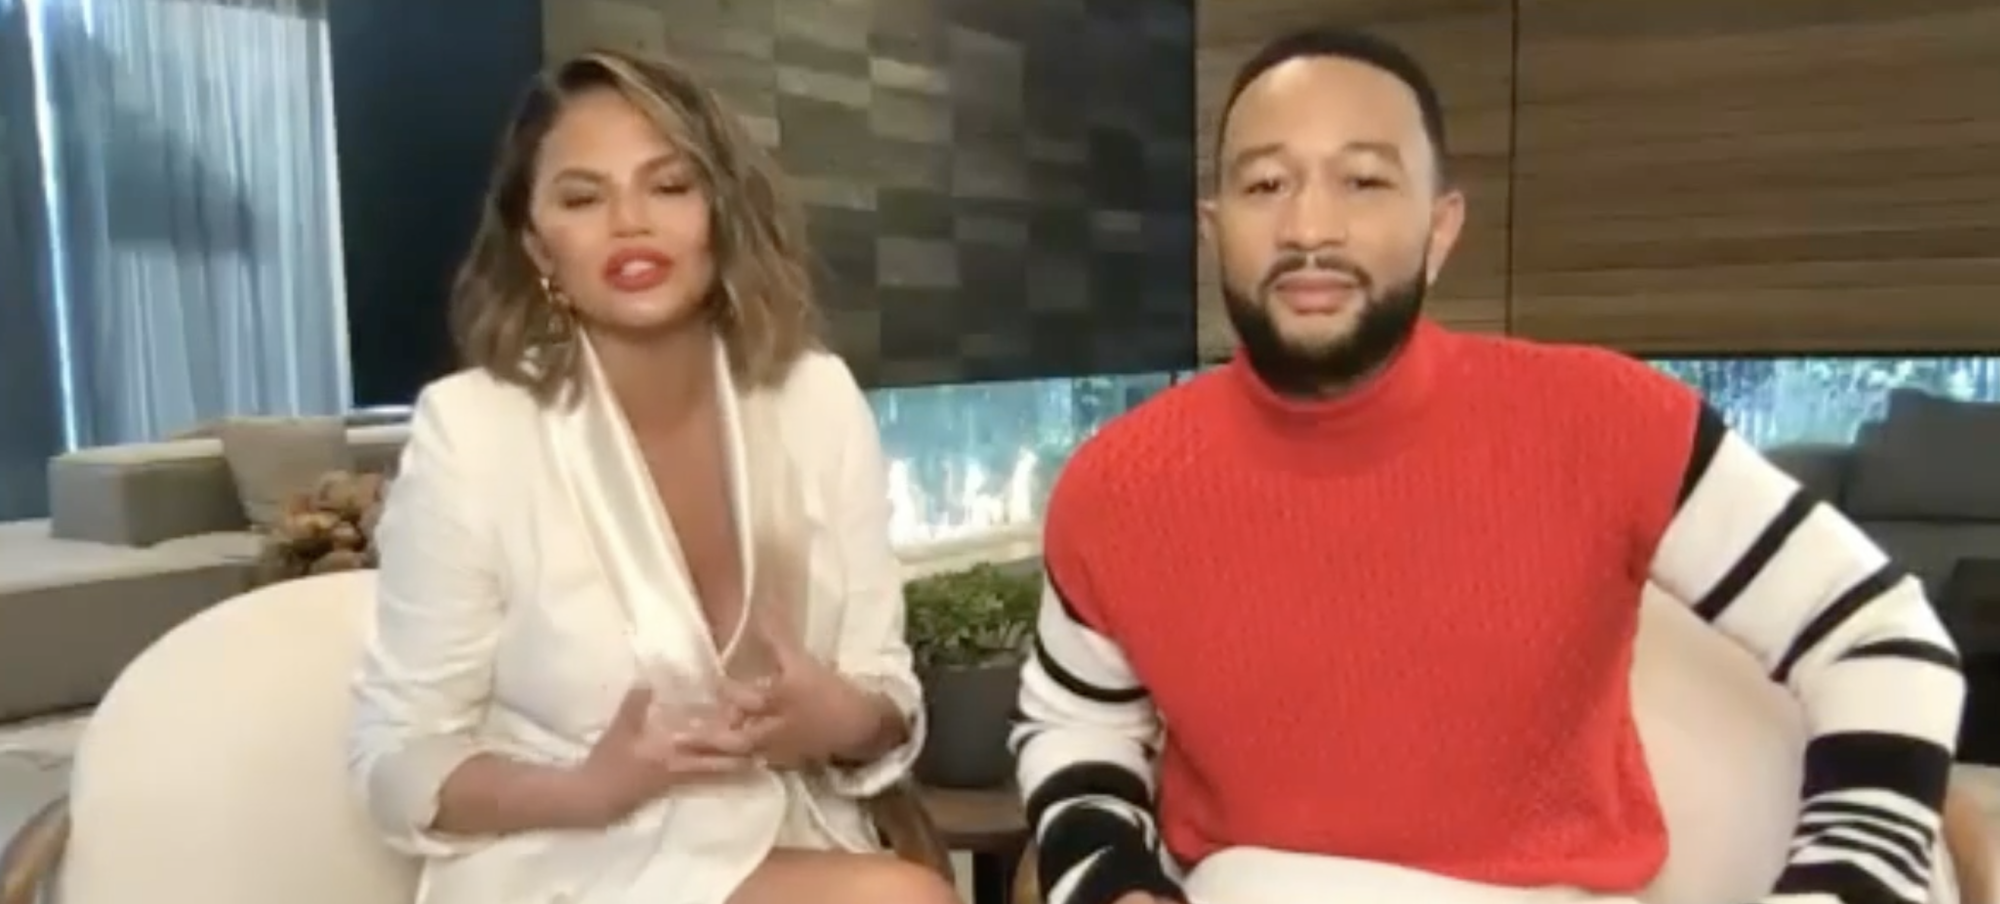 Chrissy Teigen and John Legend open up about their 'complete and utter grief' in 1st interview since pregnancy loss